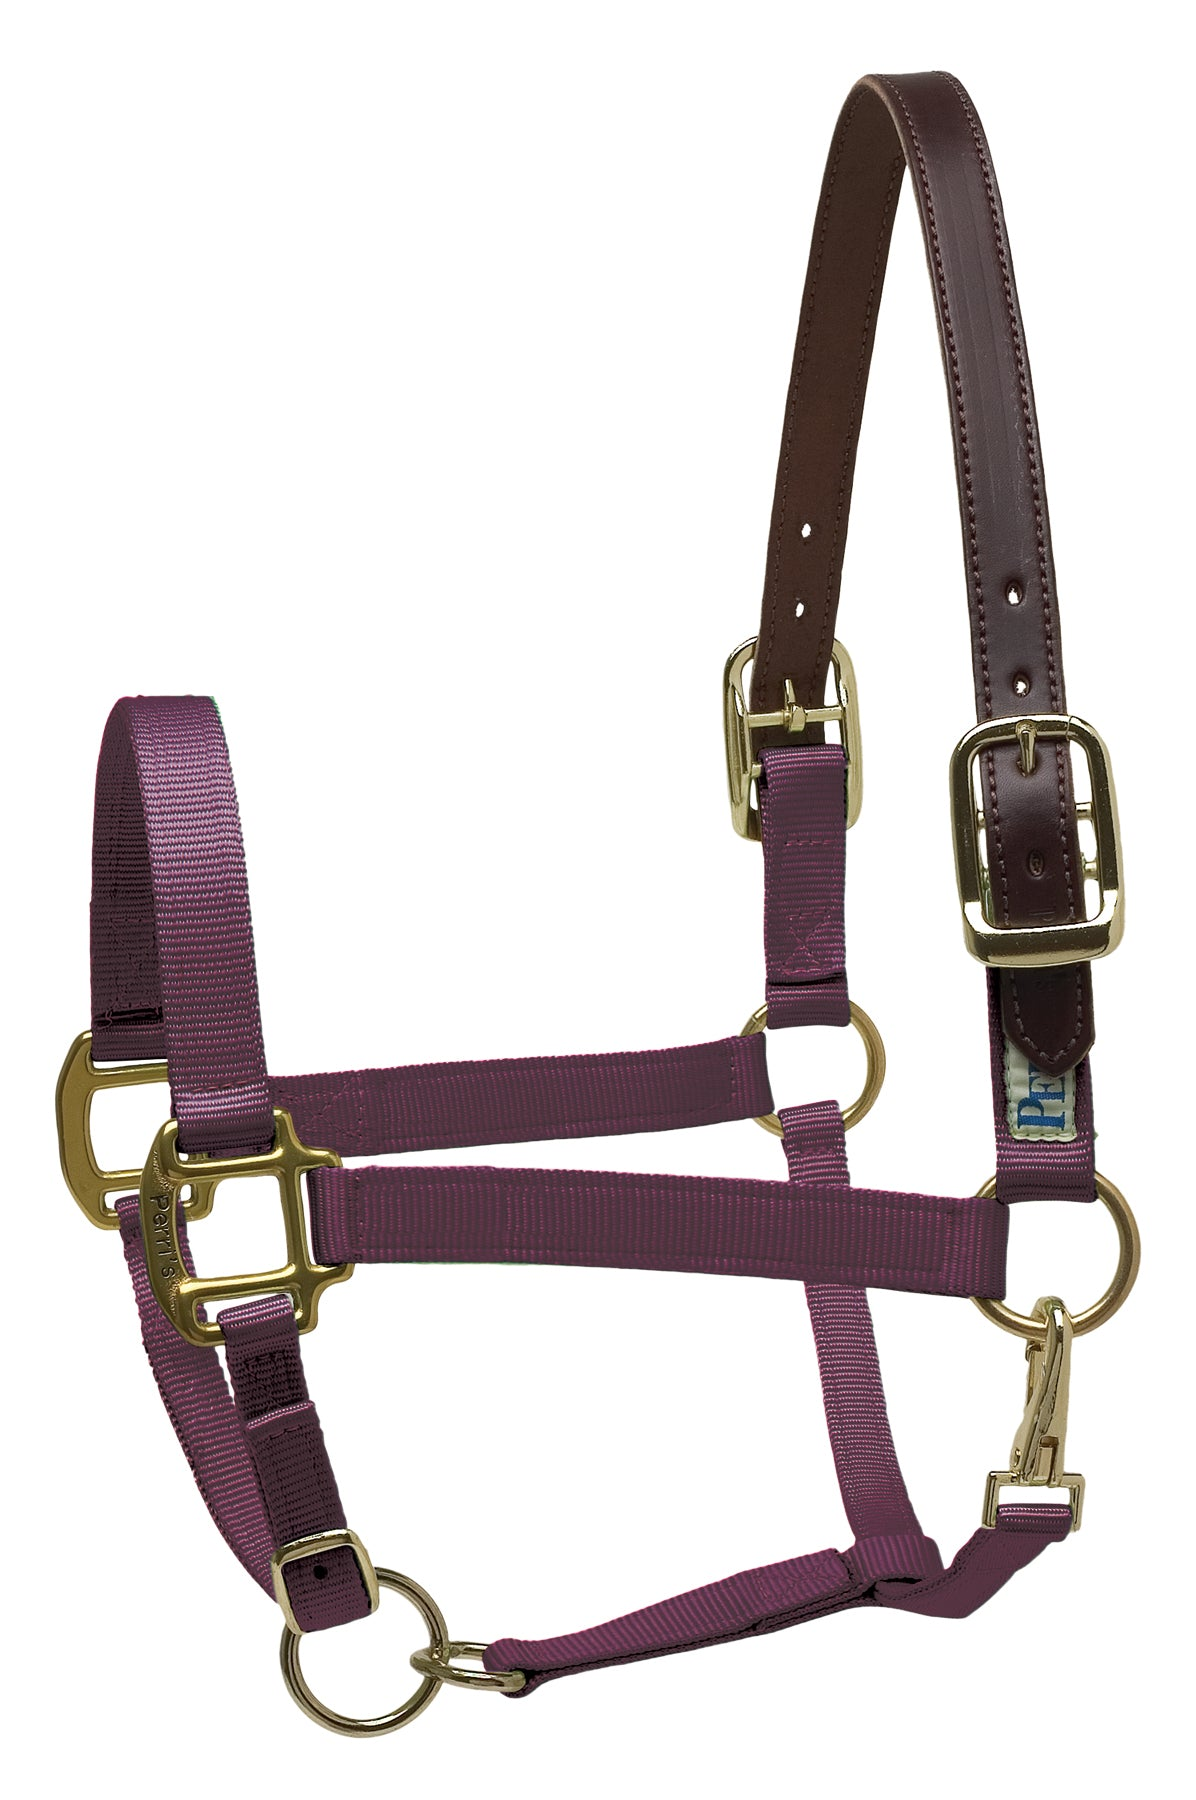 Perri's Leather Safety Halter - Breeches.com